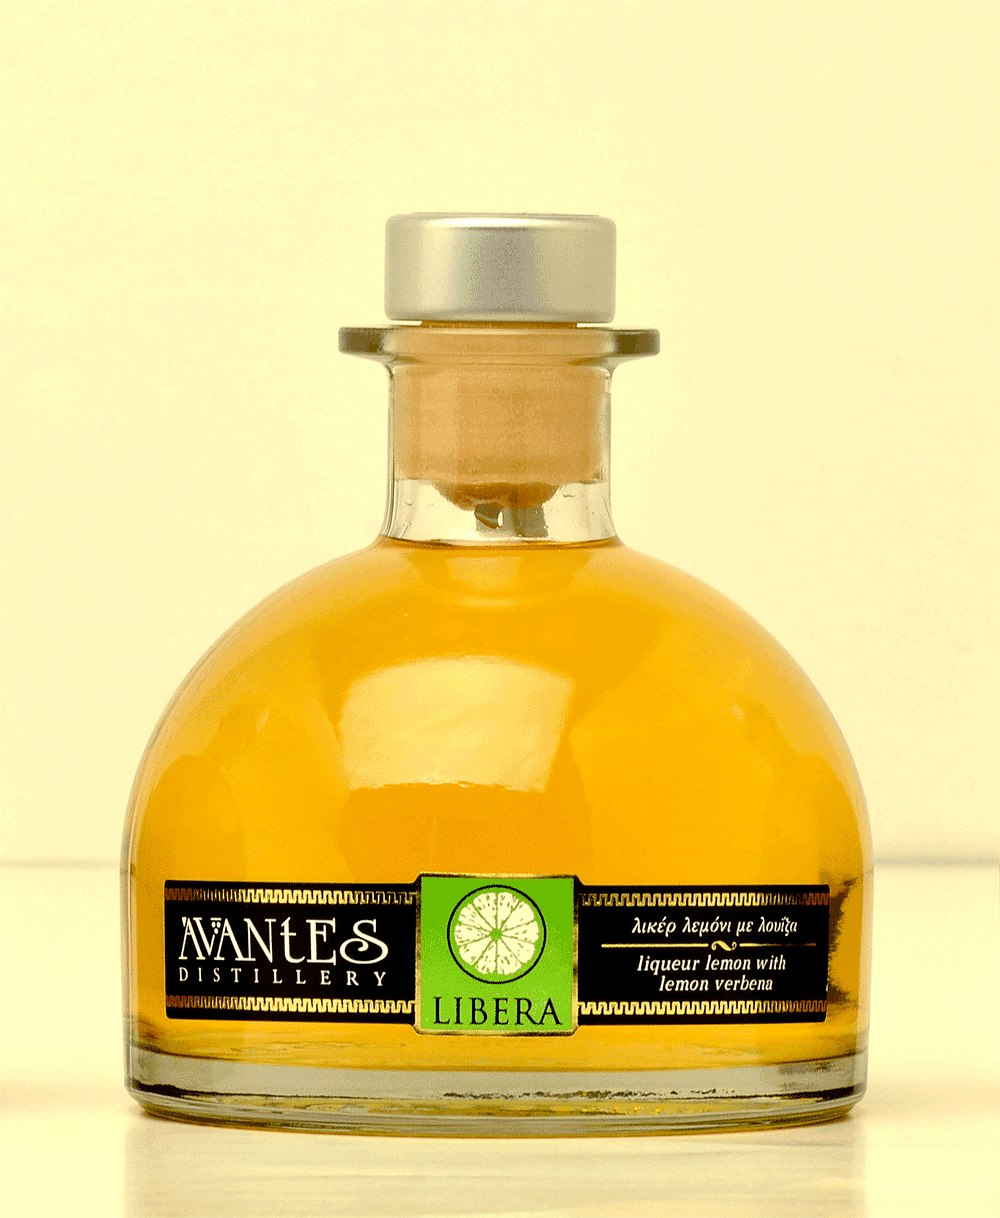 LIBERA LIQUEUR LEMON WITH LEMON VERBENA